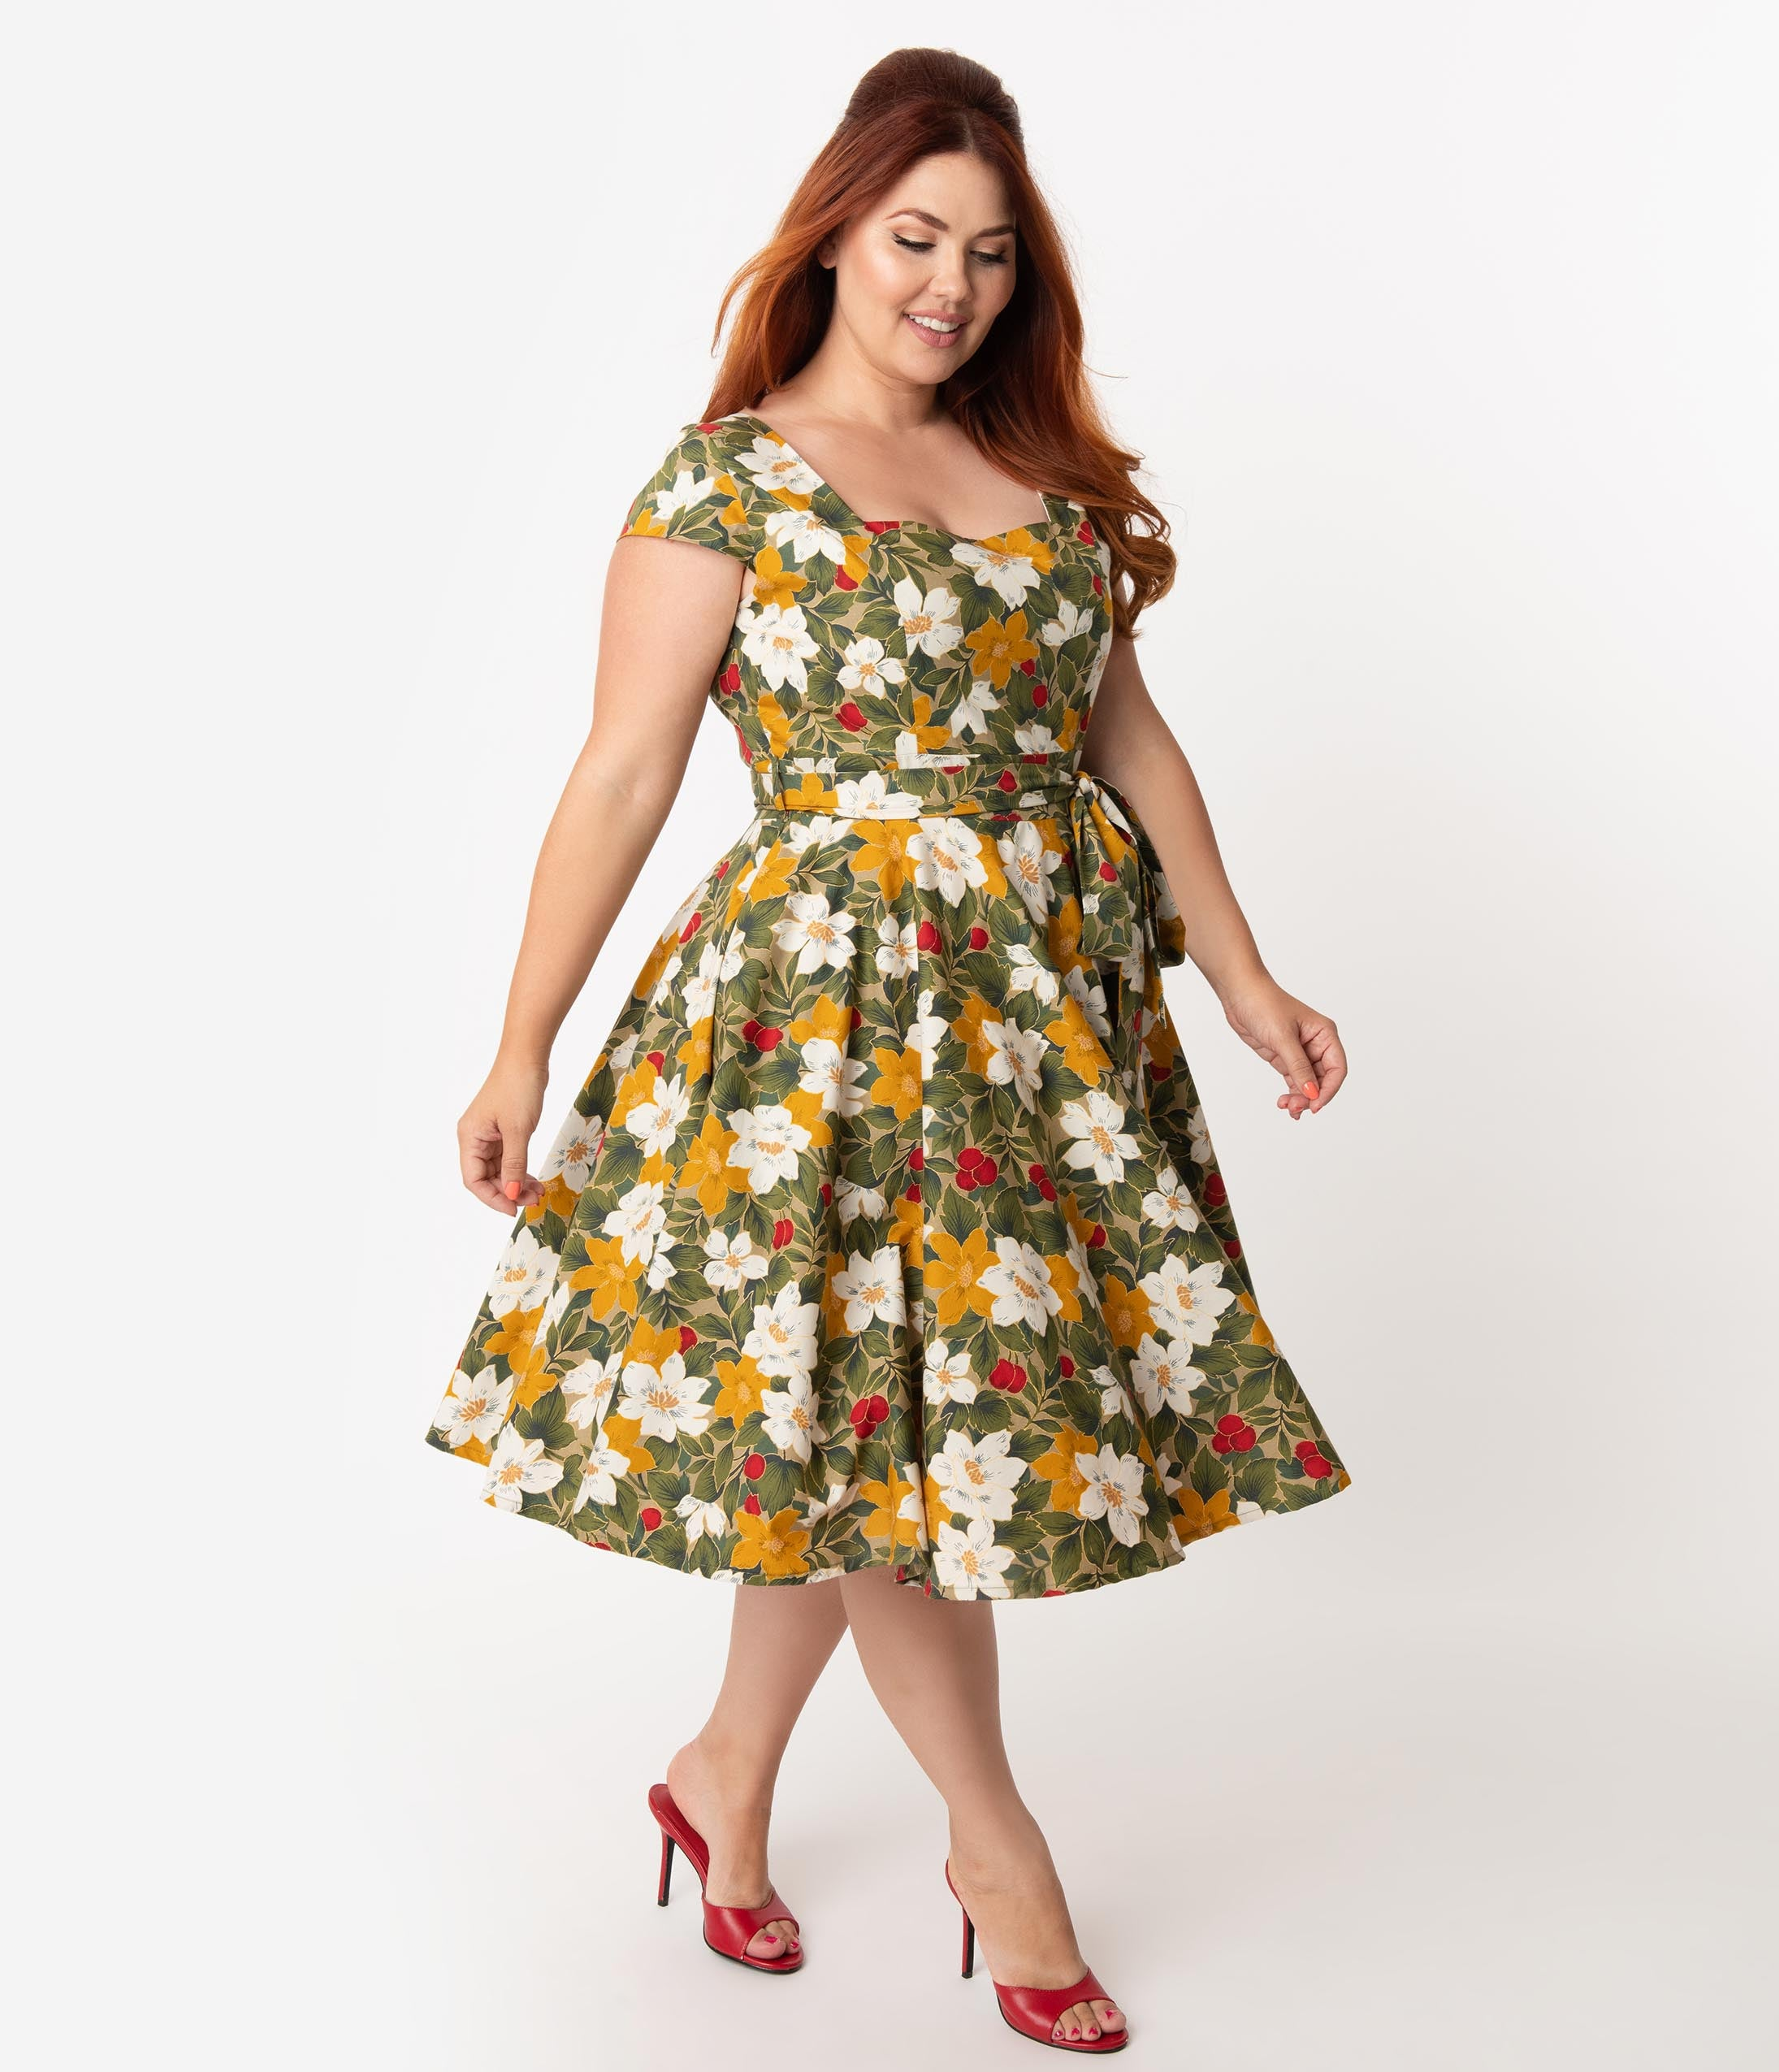 Vintage Style Maternity Clothes Plus Size Retro Style Olive  Mustard Fall Floral Print Anna Cap Sleeve Swing Dress $78.00 AT vintagedancer.com